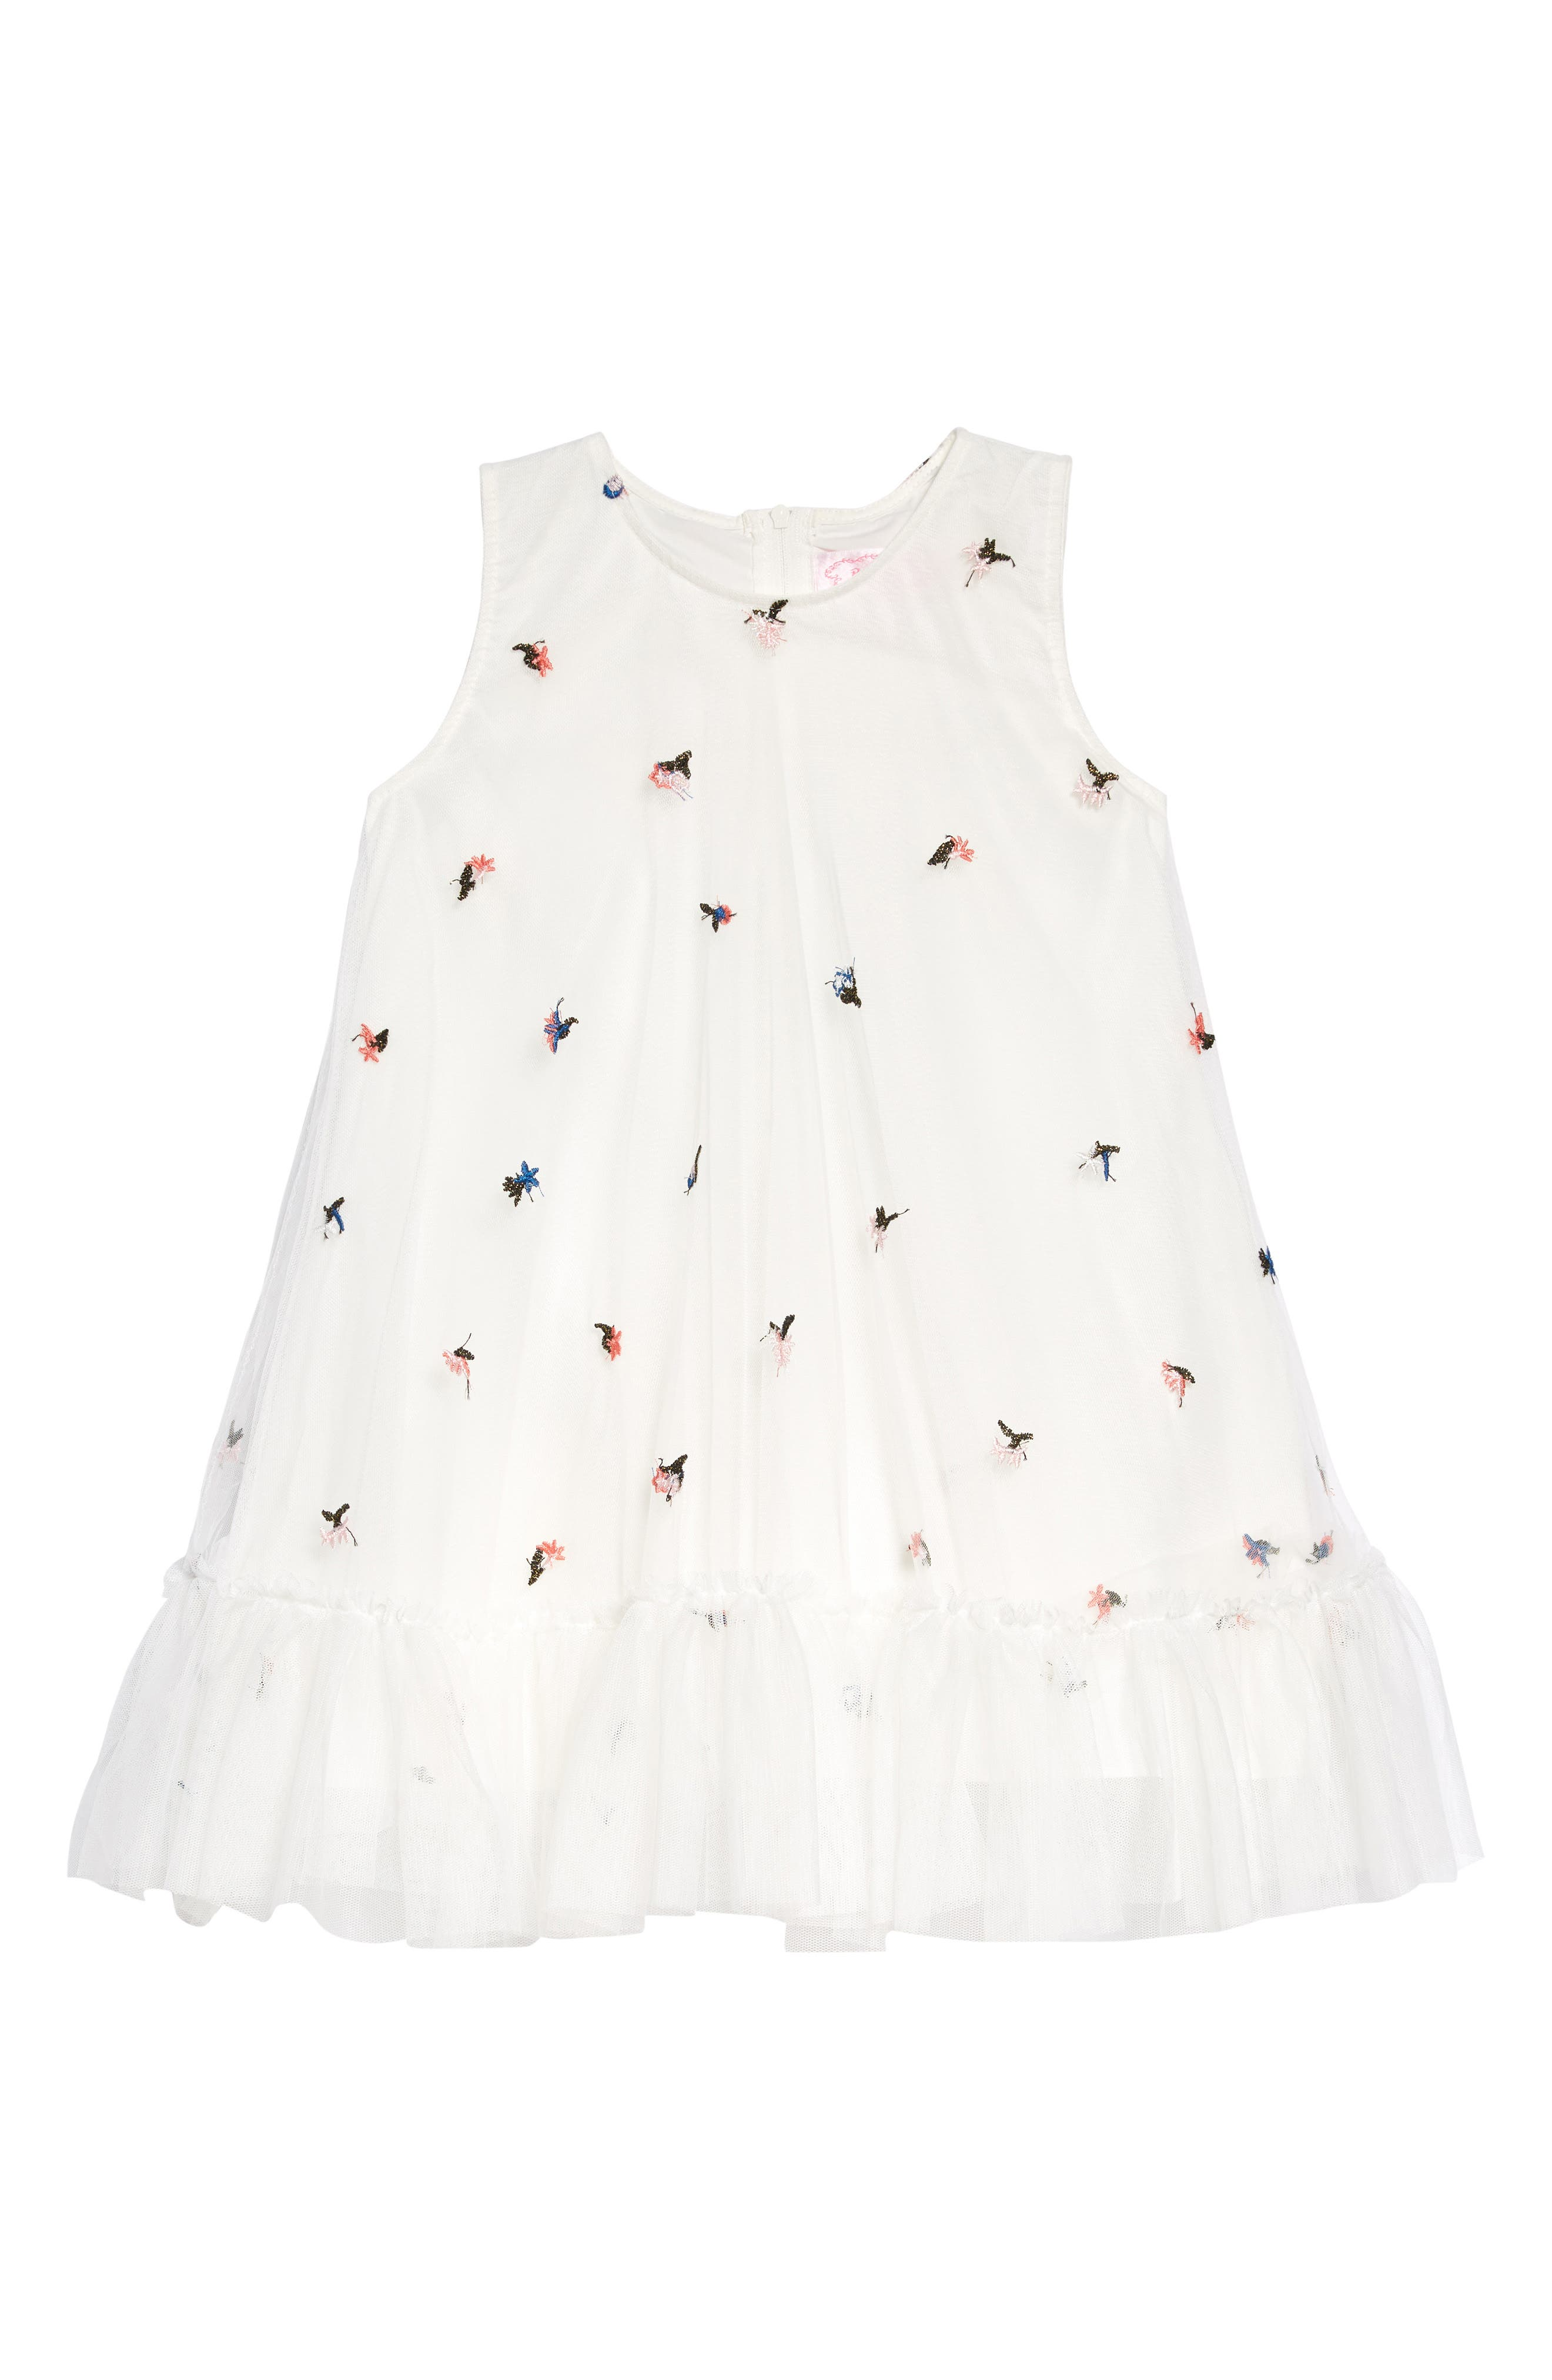 POPATU, Floral Embroidered Tulle Dress, Main thumbnail 1, color, WHITE